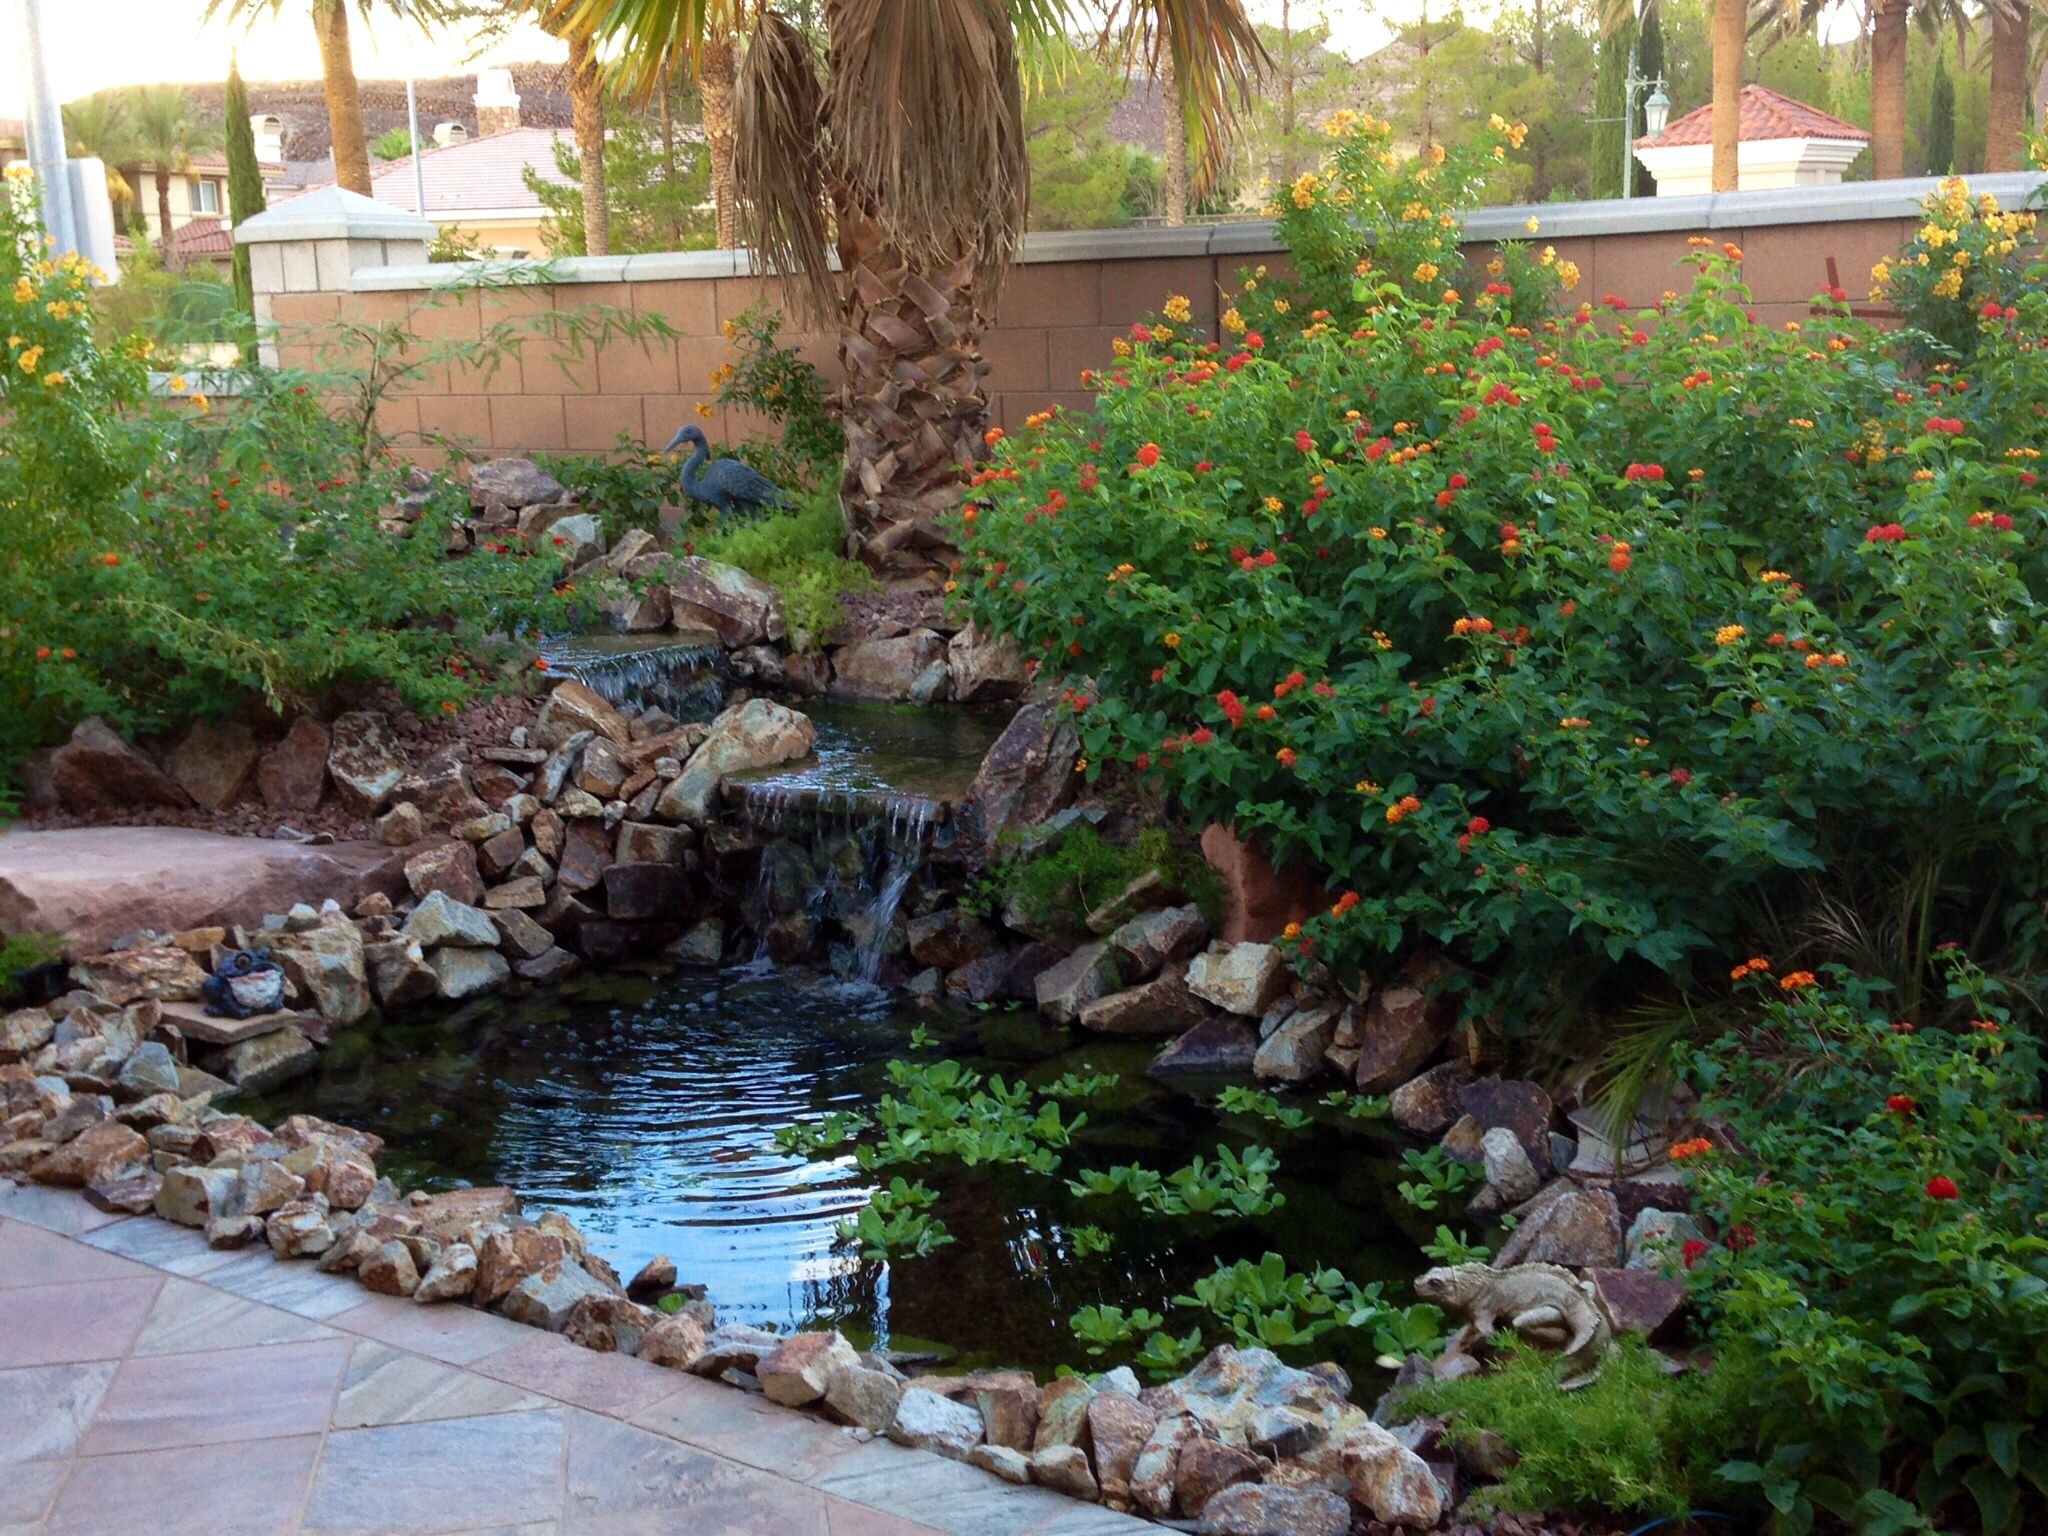 G kelley my backyard pond in las vegas nevada water for Koi ponds and gardens